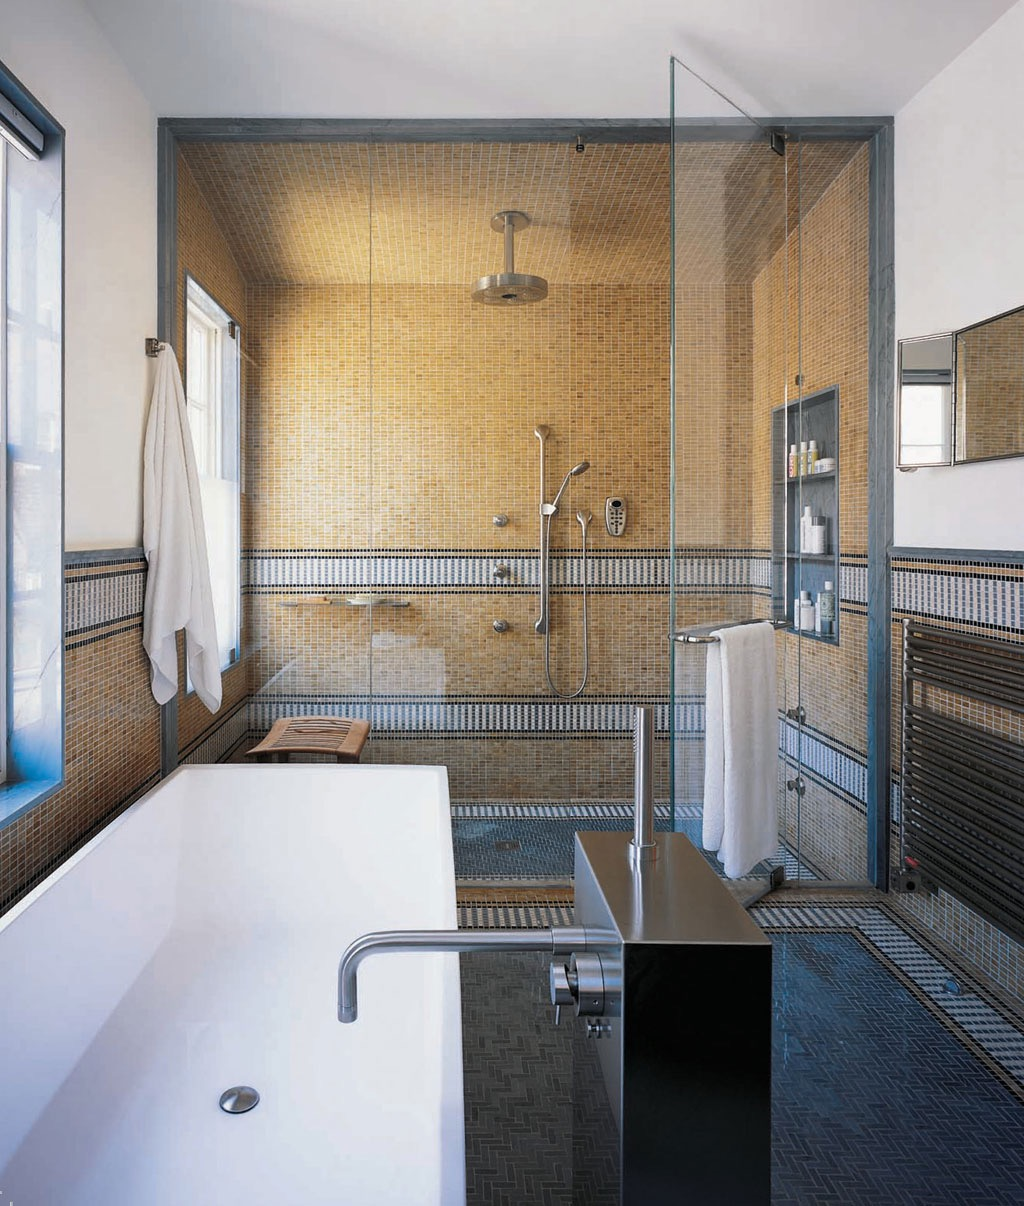 Modern Contemporary Tropical Shower Interior Design (Image 12 of 22)